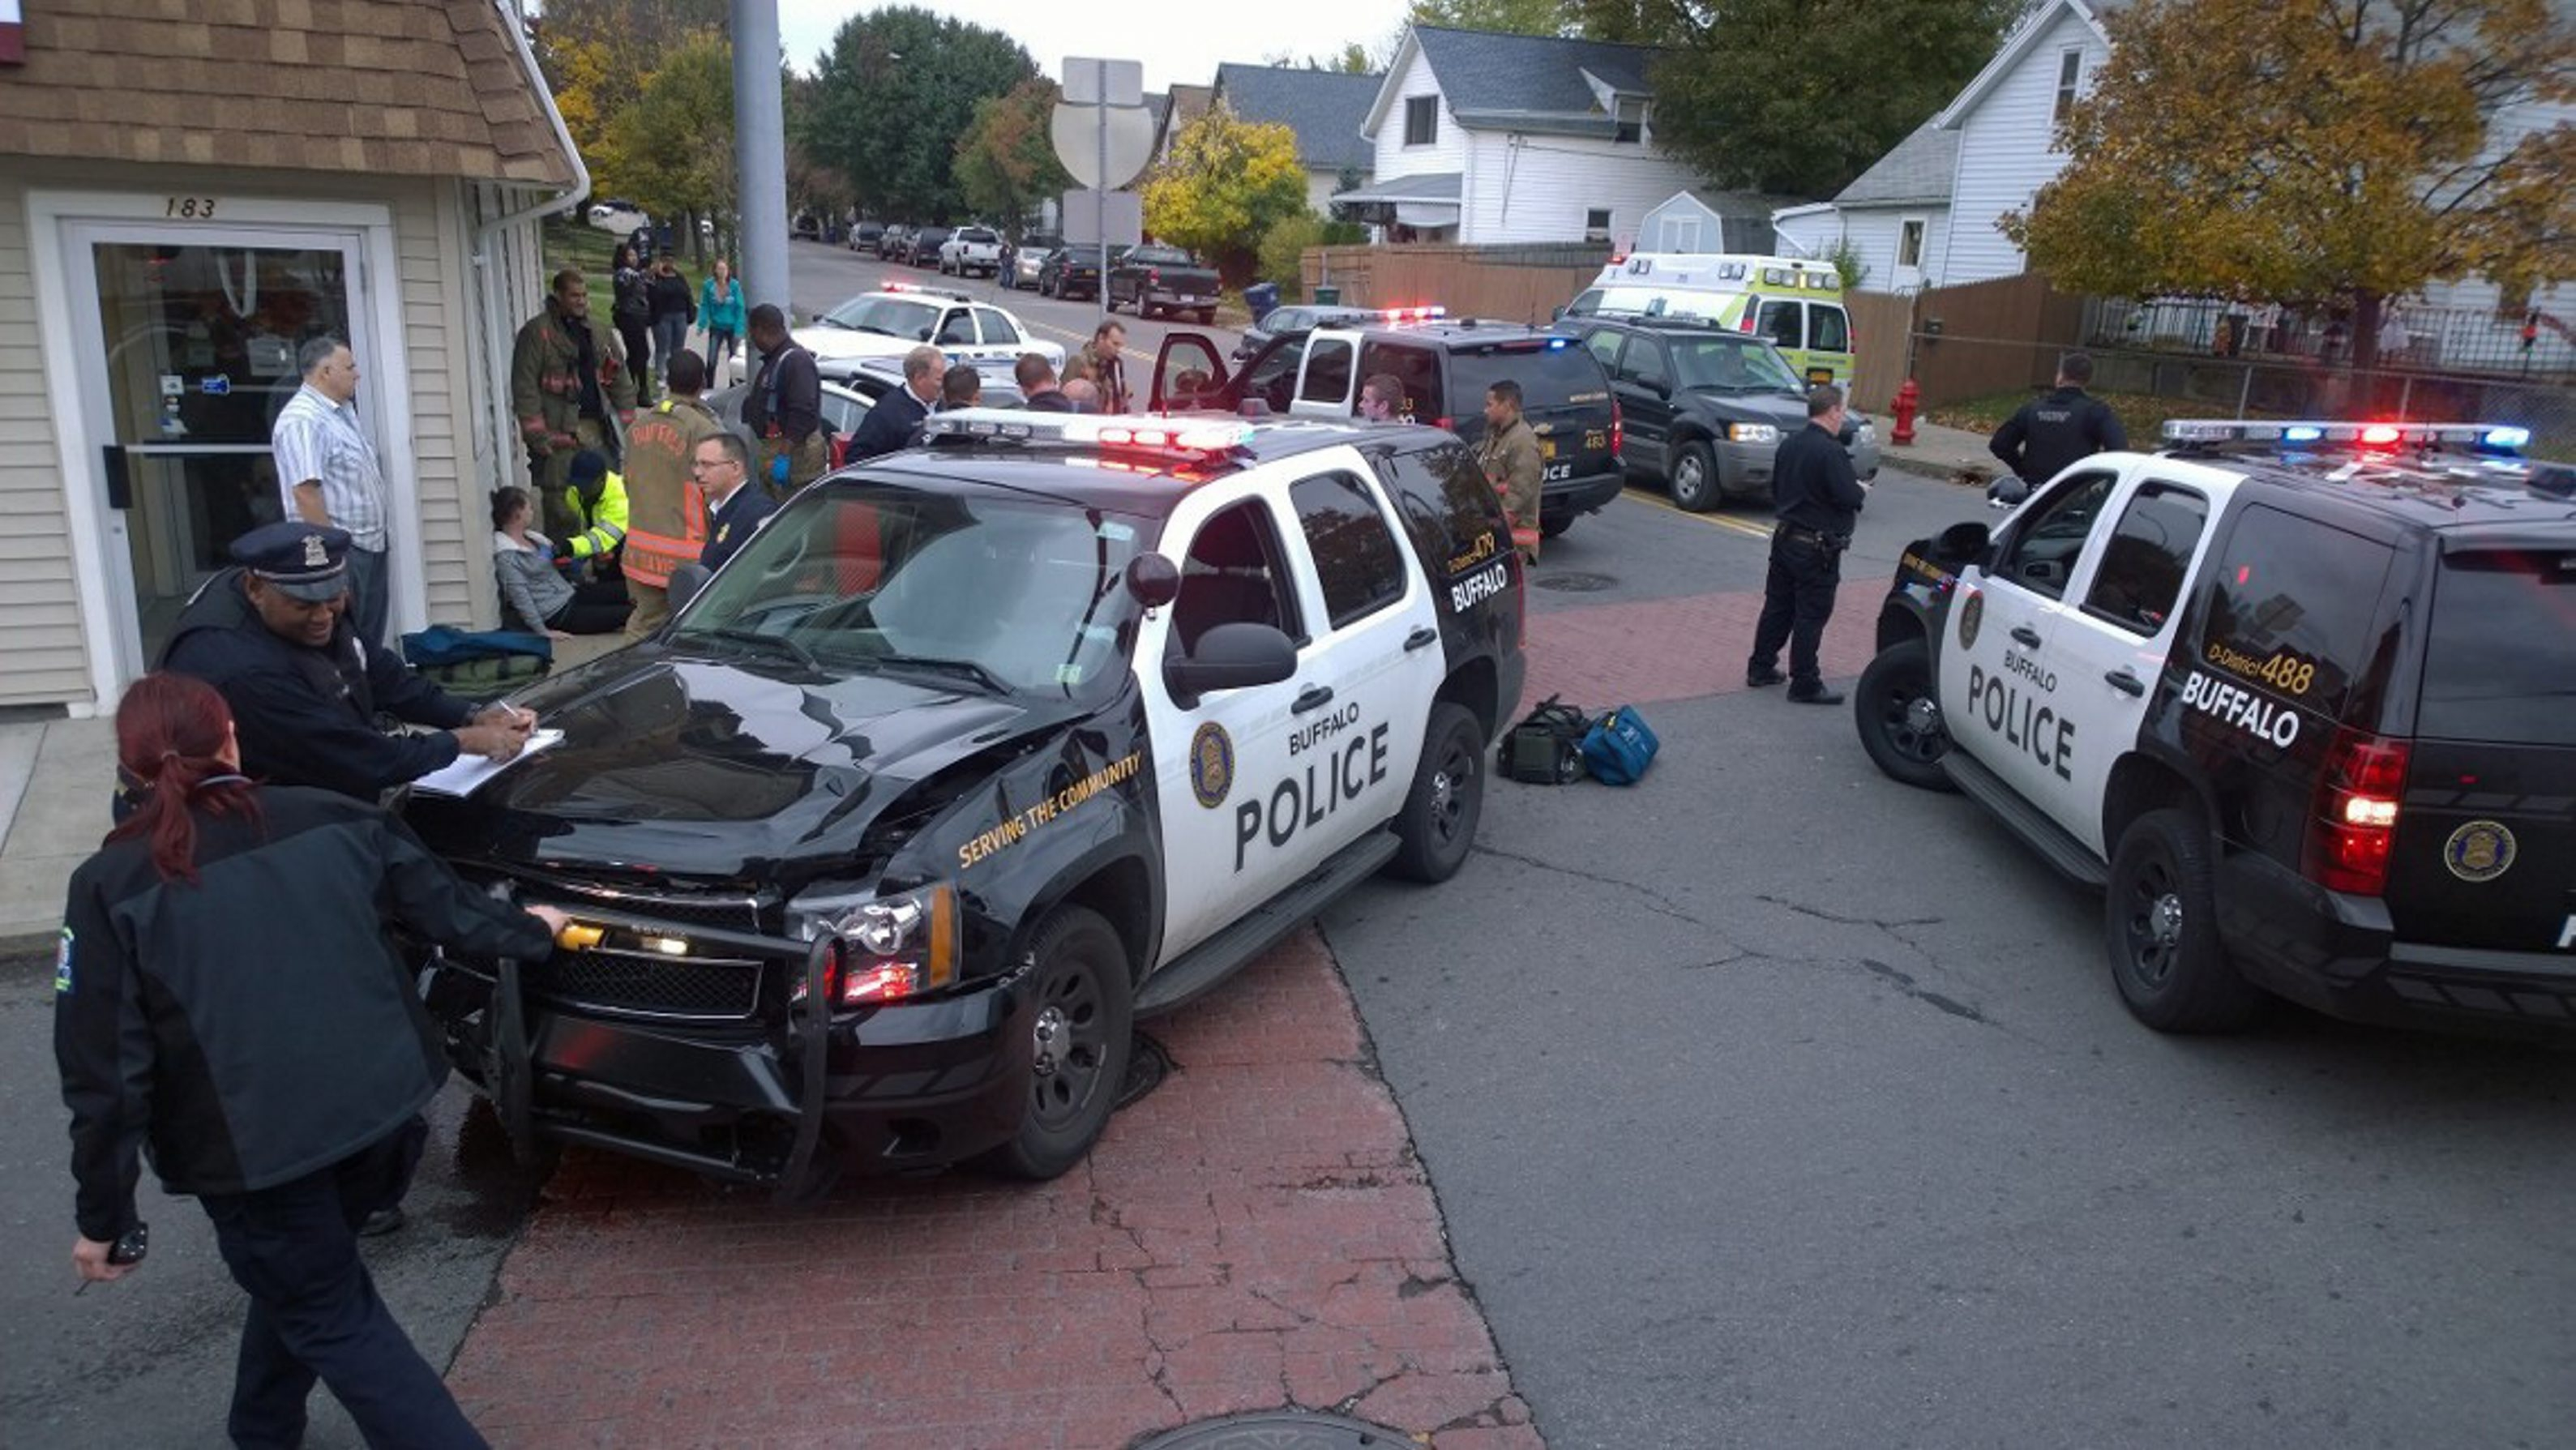 The site of a collision between a police car and a vehicle at Hertel and Tonawanda in Buffalo.